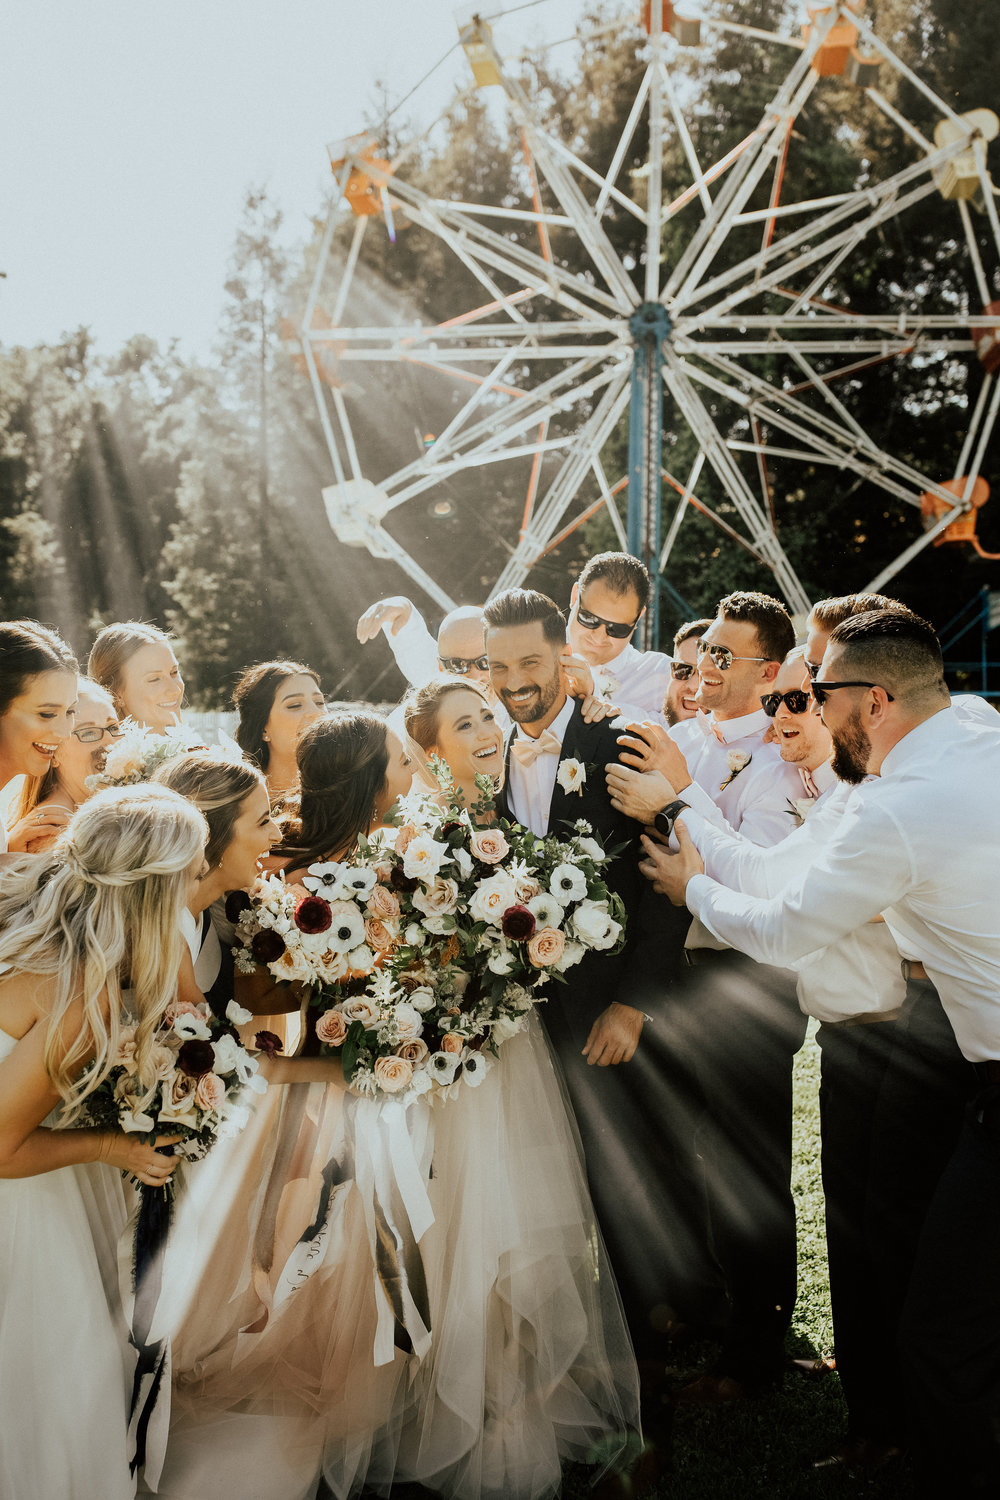 Dear Brides - As Photographers we are always looking for couples who are down to play with